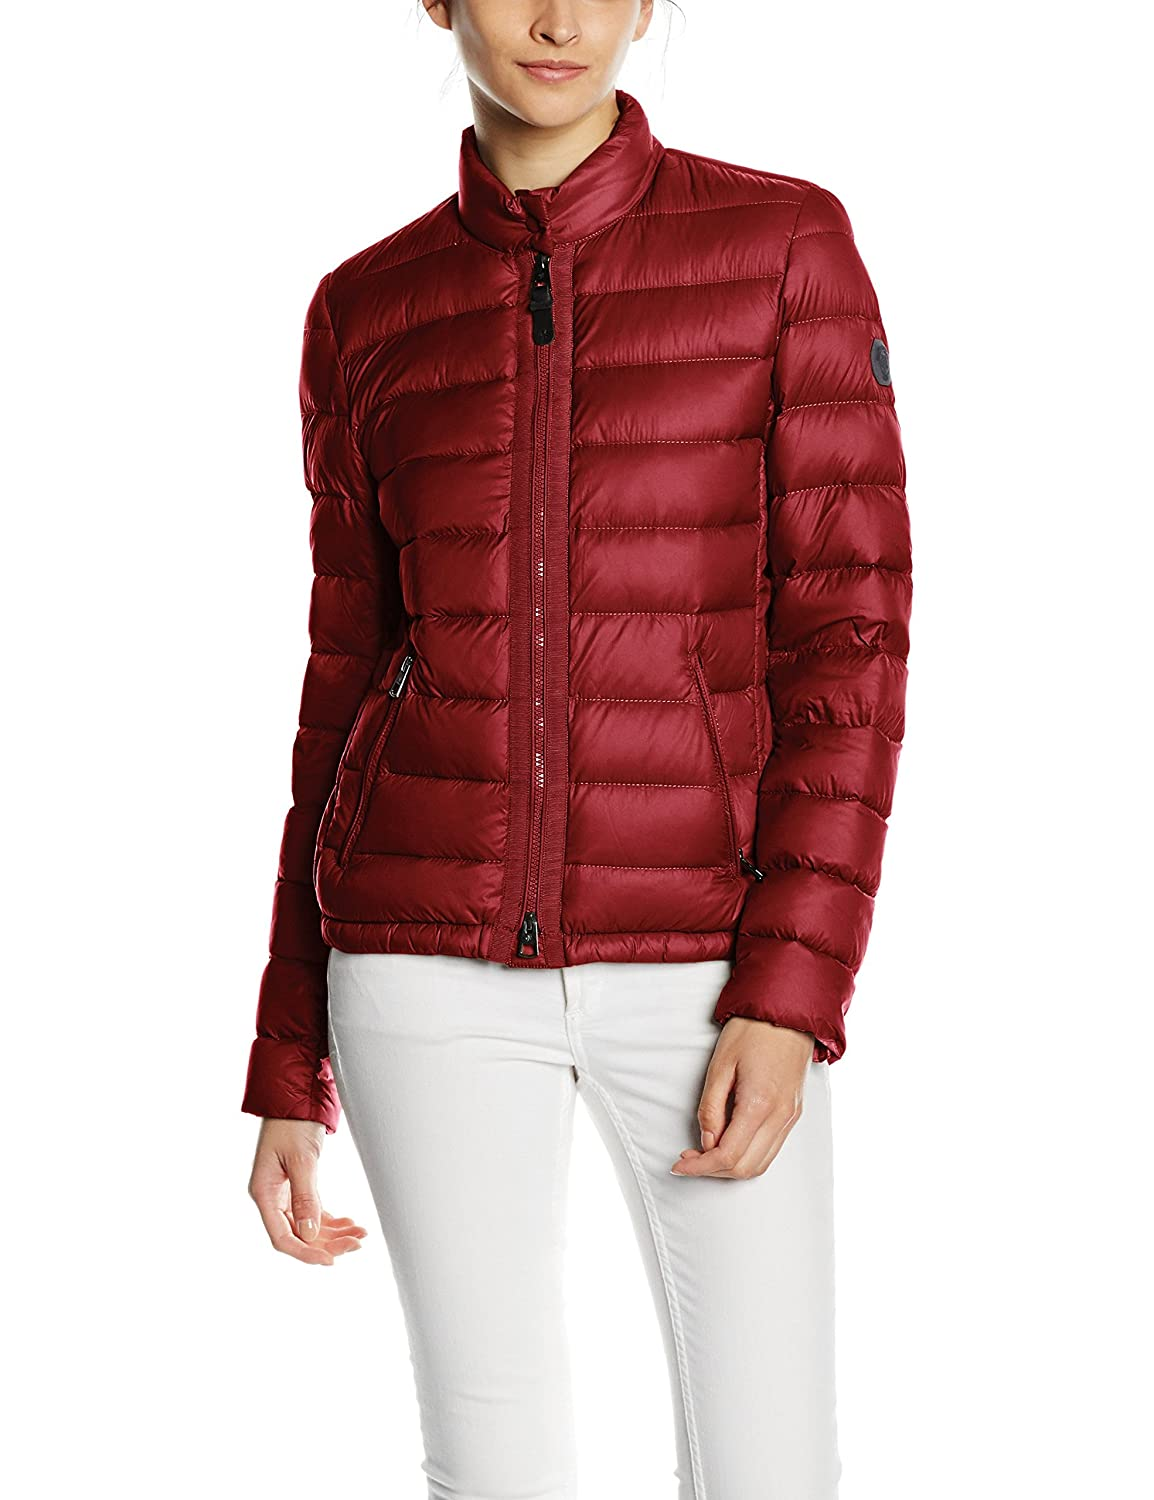 Marc O'Polo Damen Jacke 607109770181